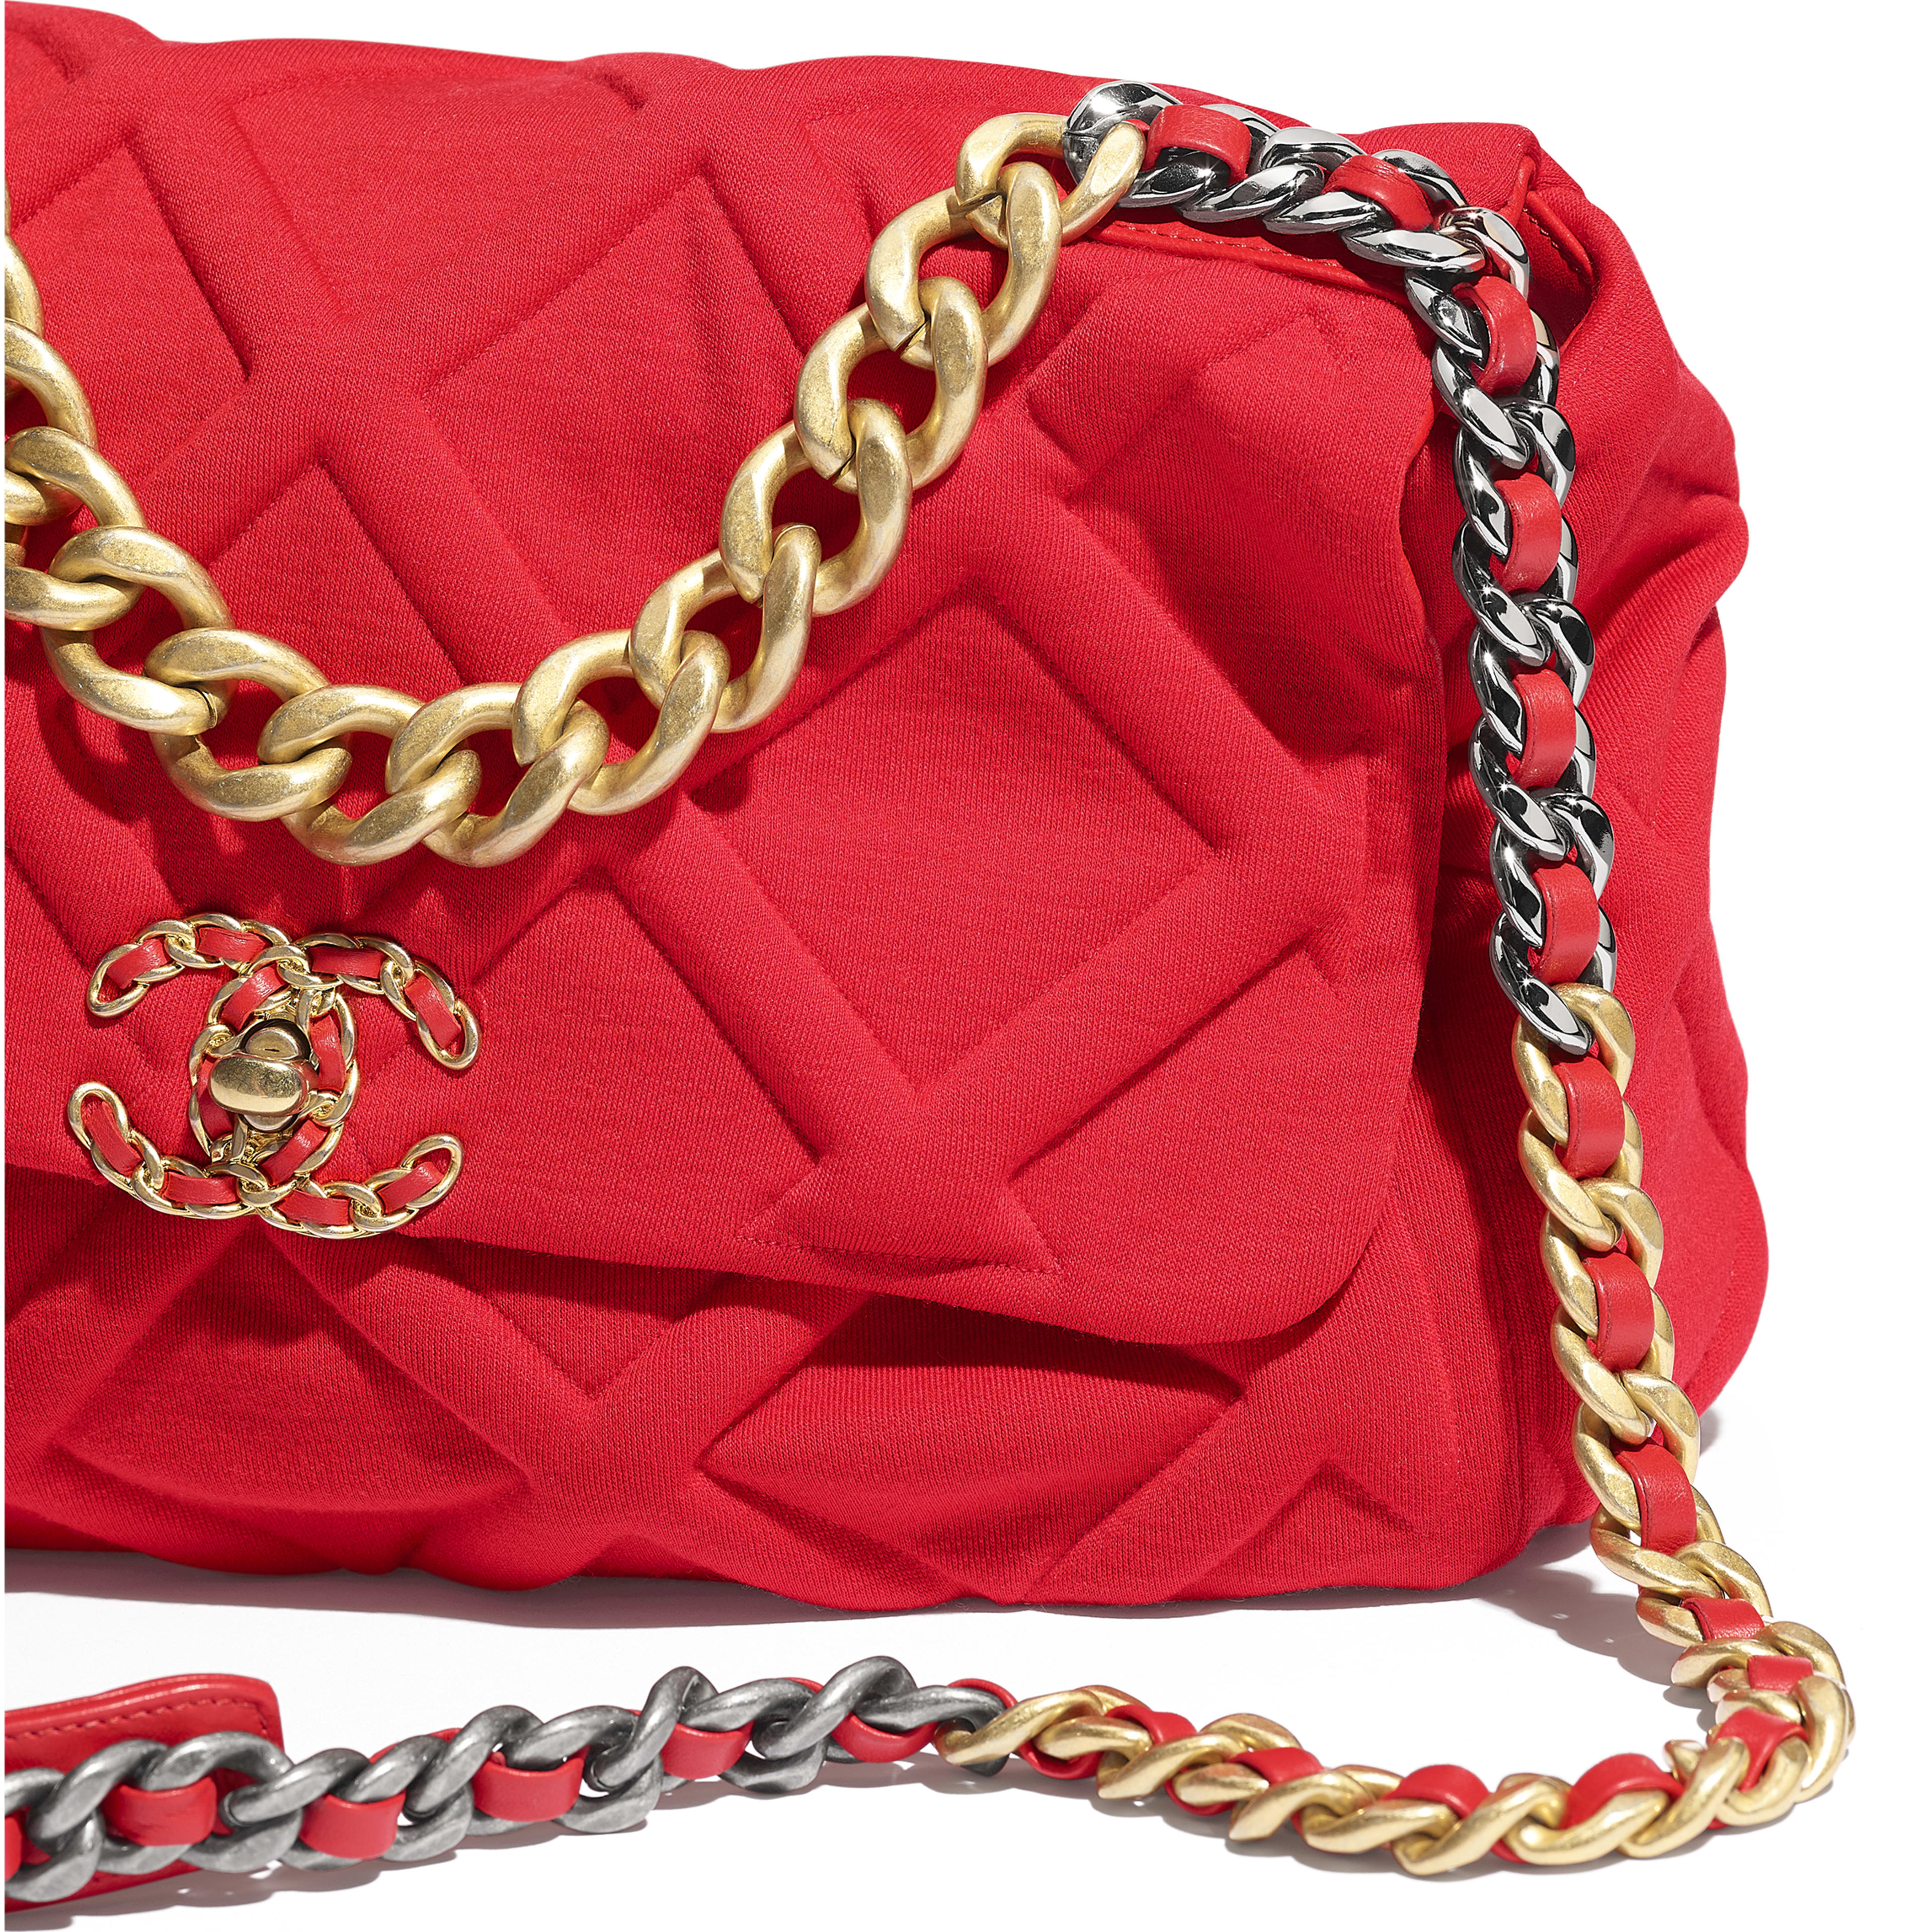 CHANEL 19 Large Flap Bag - Red - Jersey, Gold-Tone, Silver-Tone & Ruthenium-Finish Metal - Extra view - see full sized version